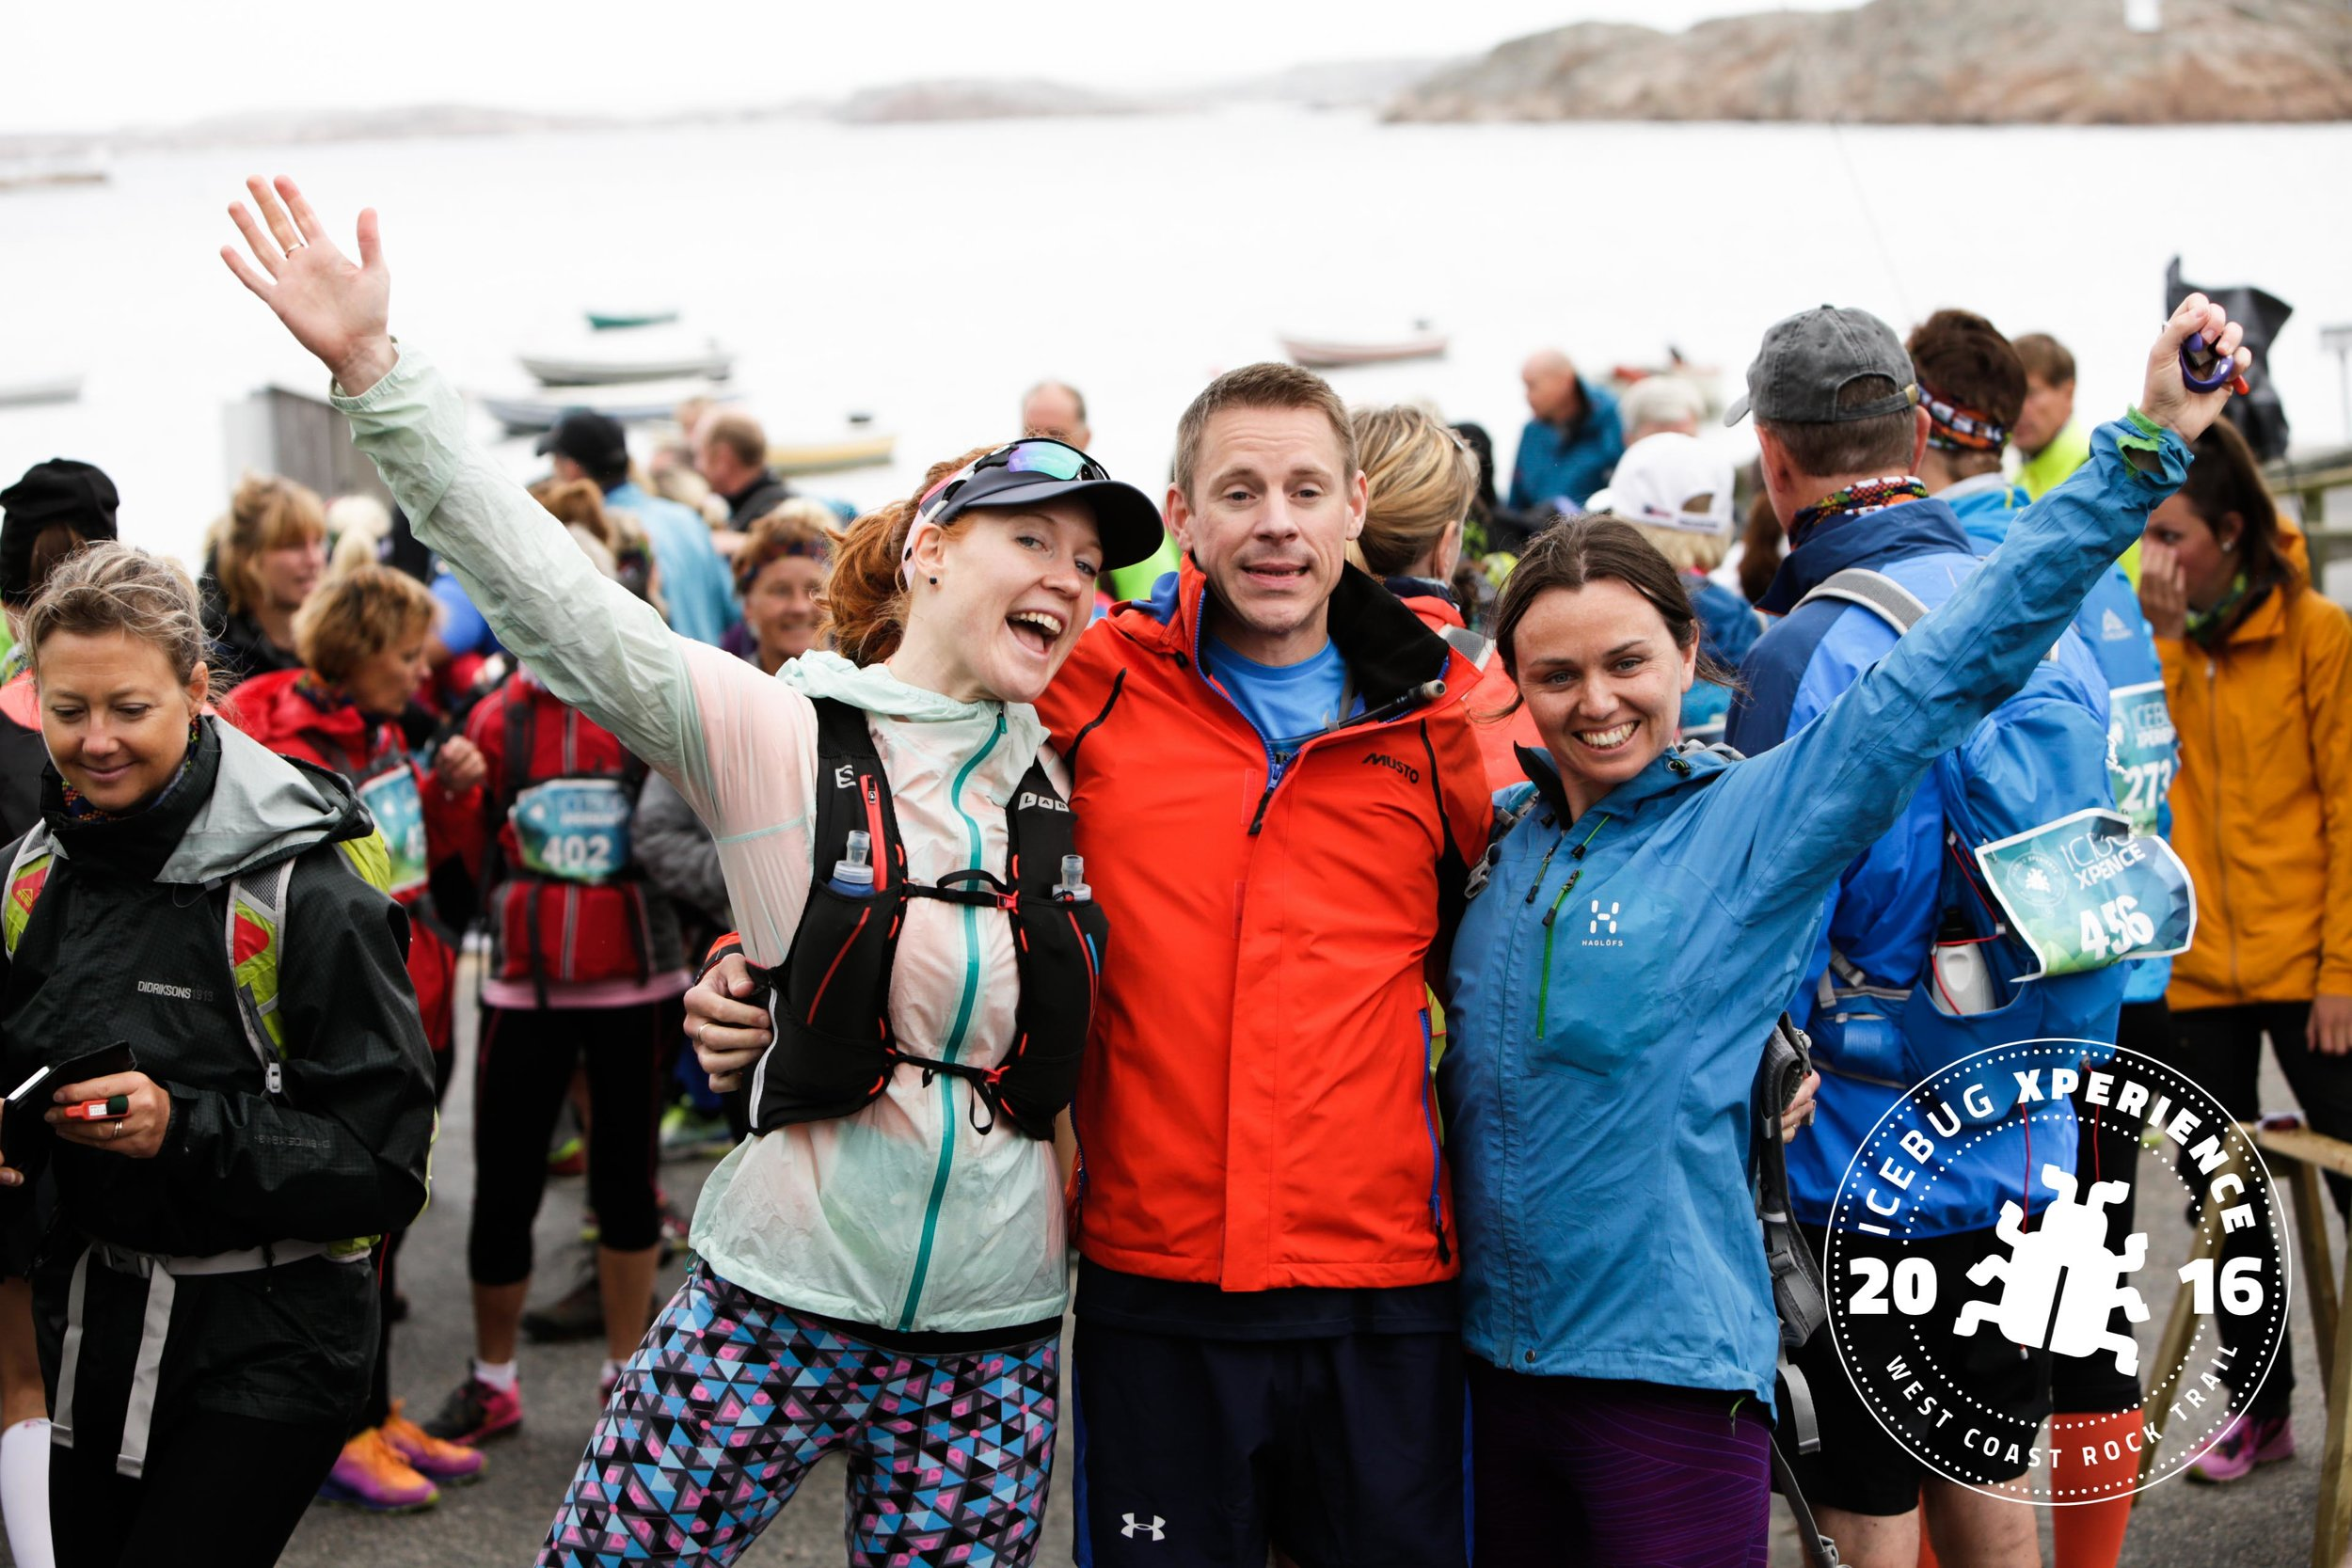 """""""We finished the Icebug Xperience 2016!"""" Editor Claire, hubby Steve and bestie Kate cheer"""